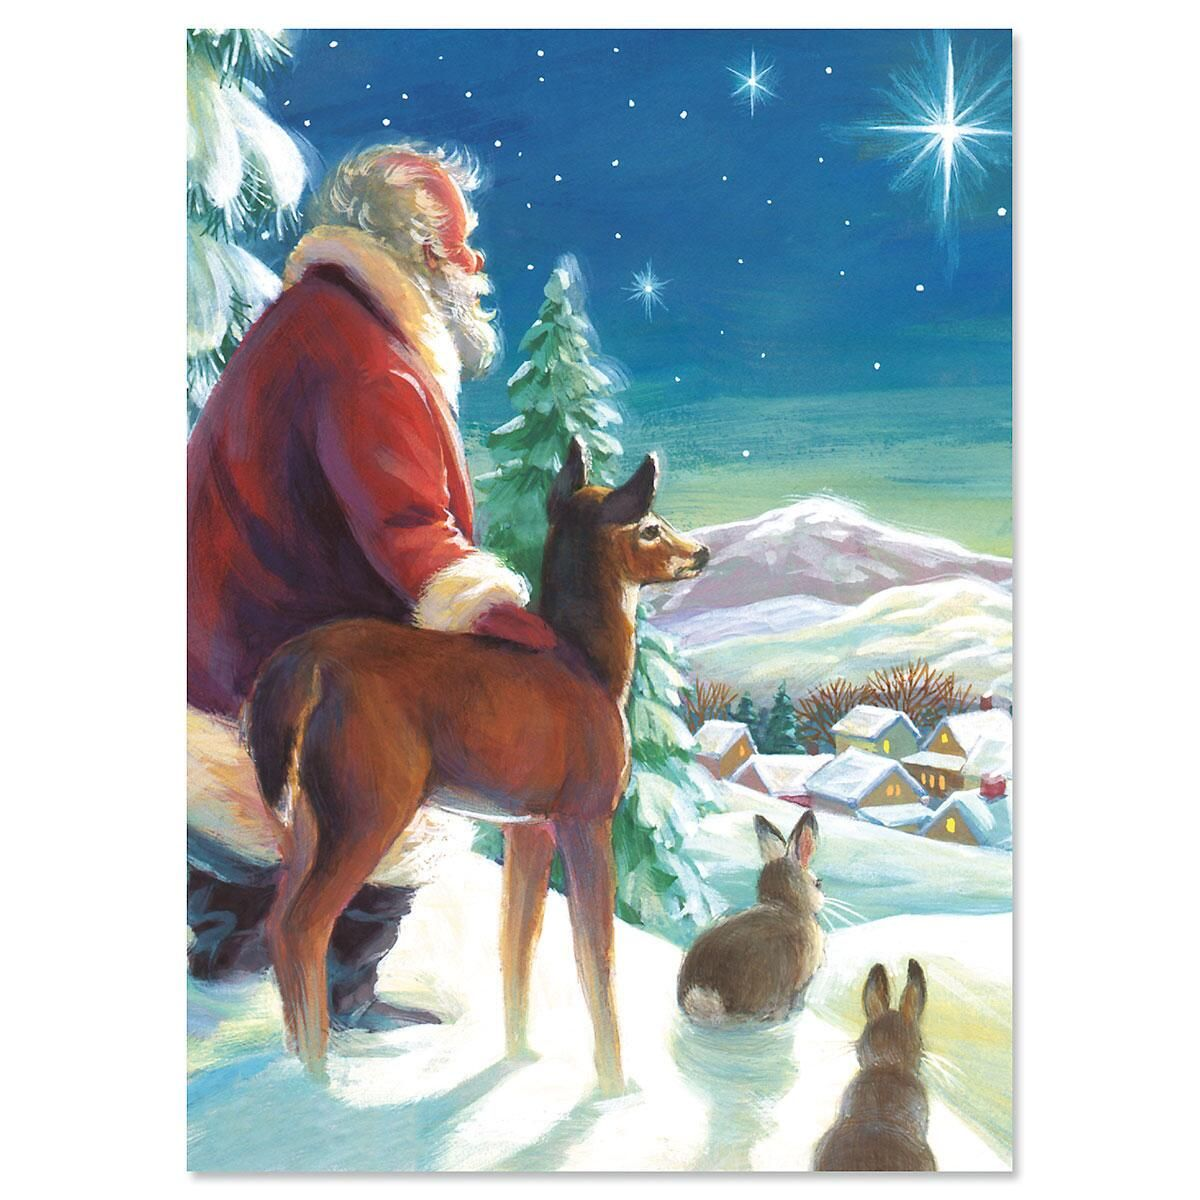 Santa and Star Personalized Christmas Cards - Set of 18